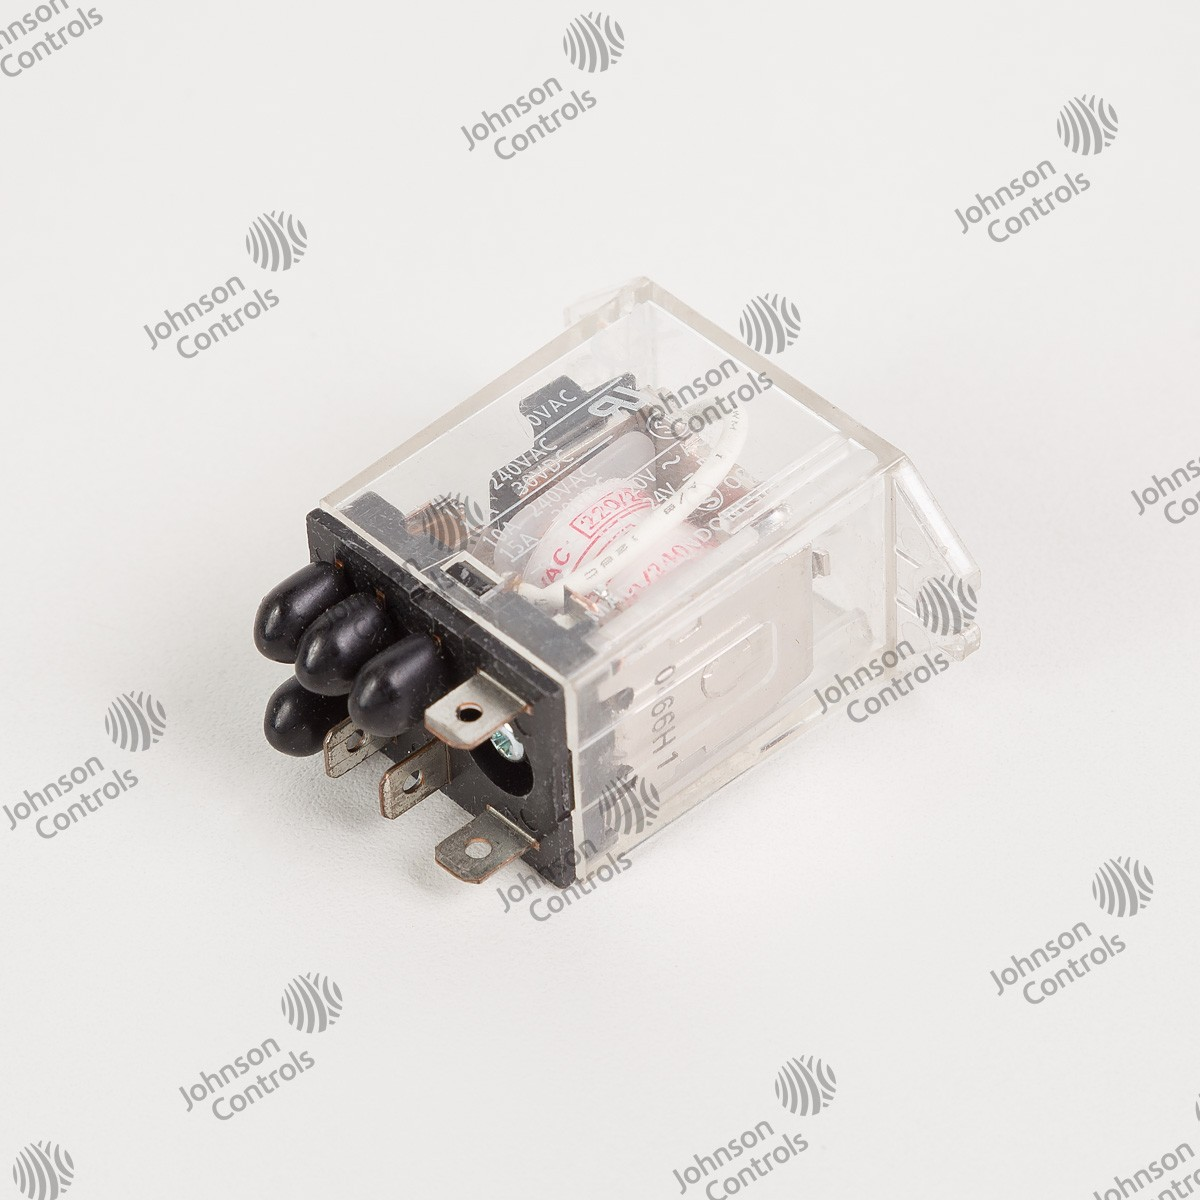 RELE OMRON 1NO 1NC (LY1F)     -024T05053-000